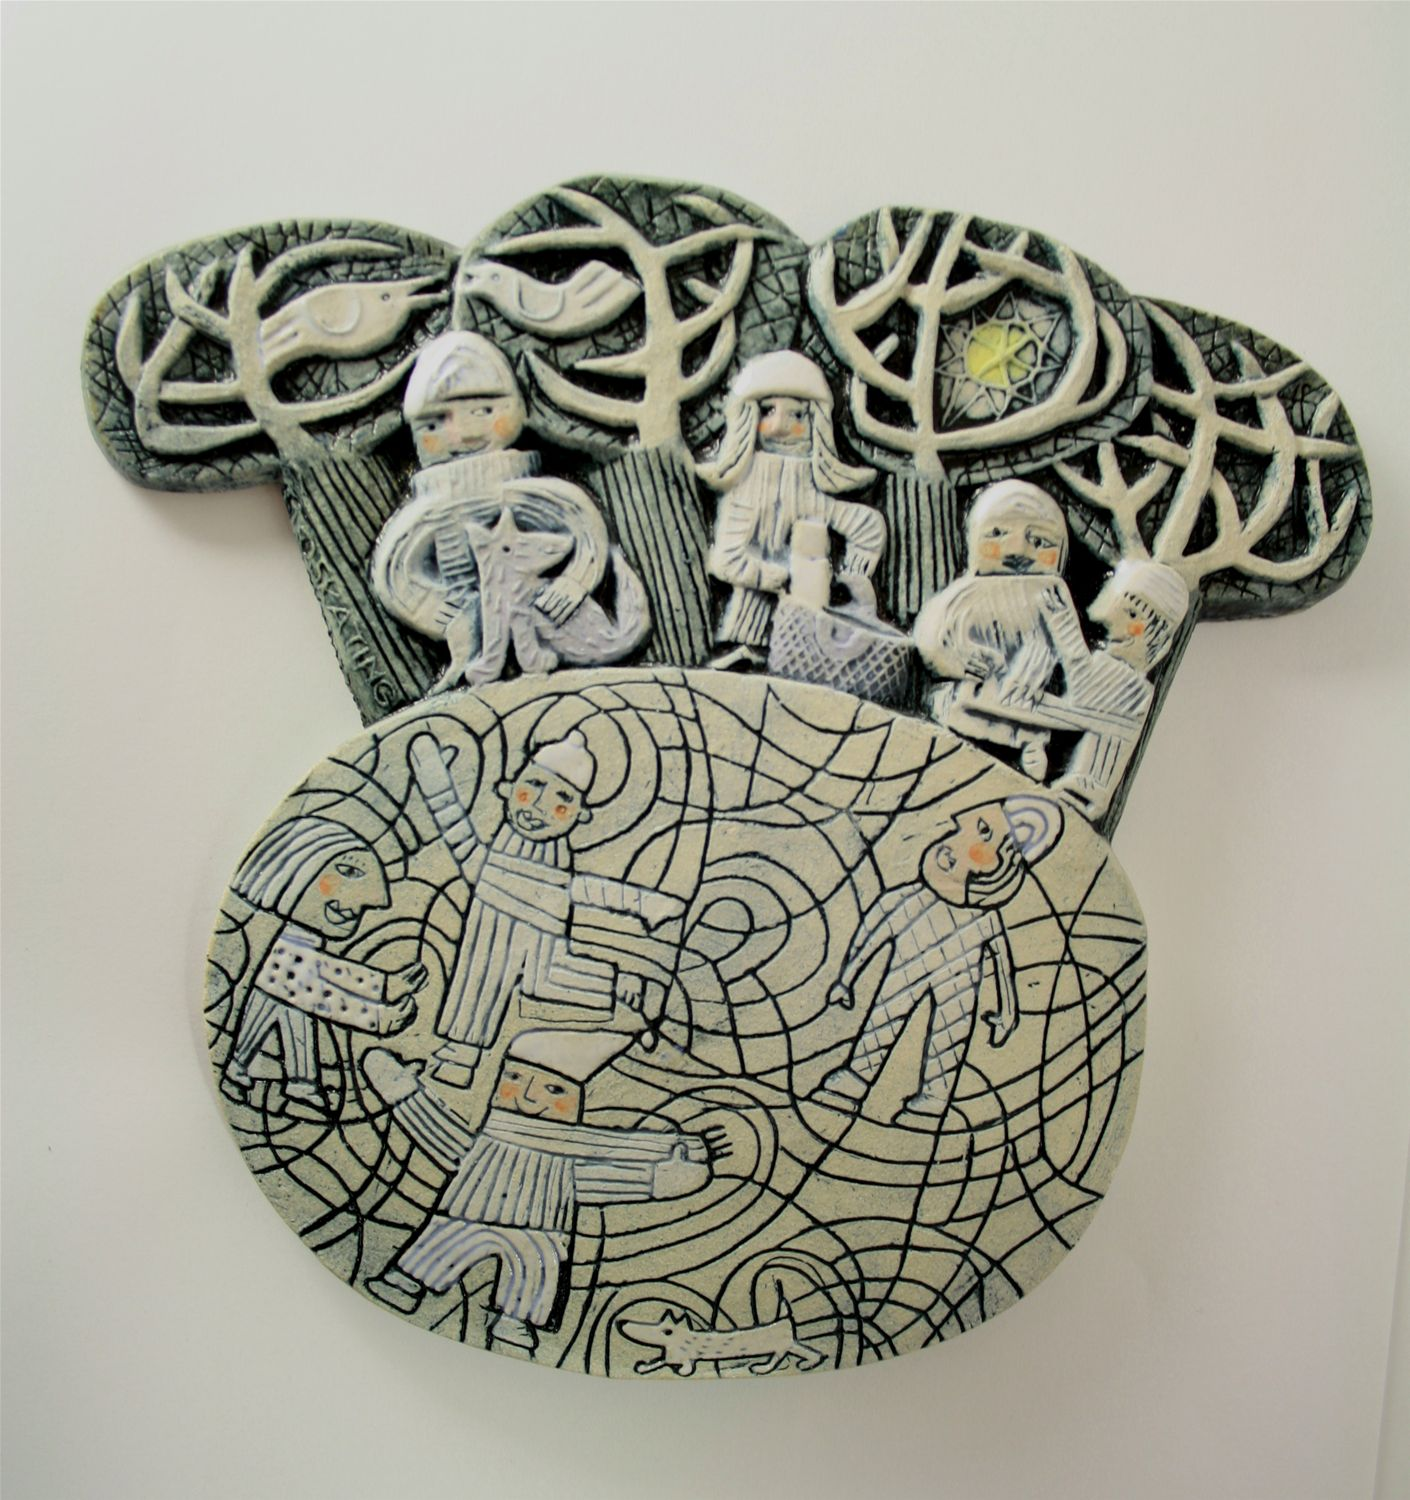 Ceramics Relief 'Skating'